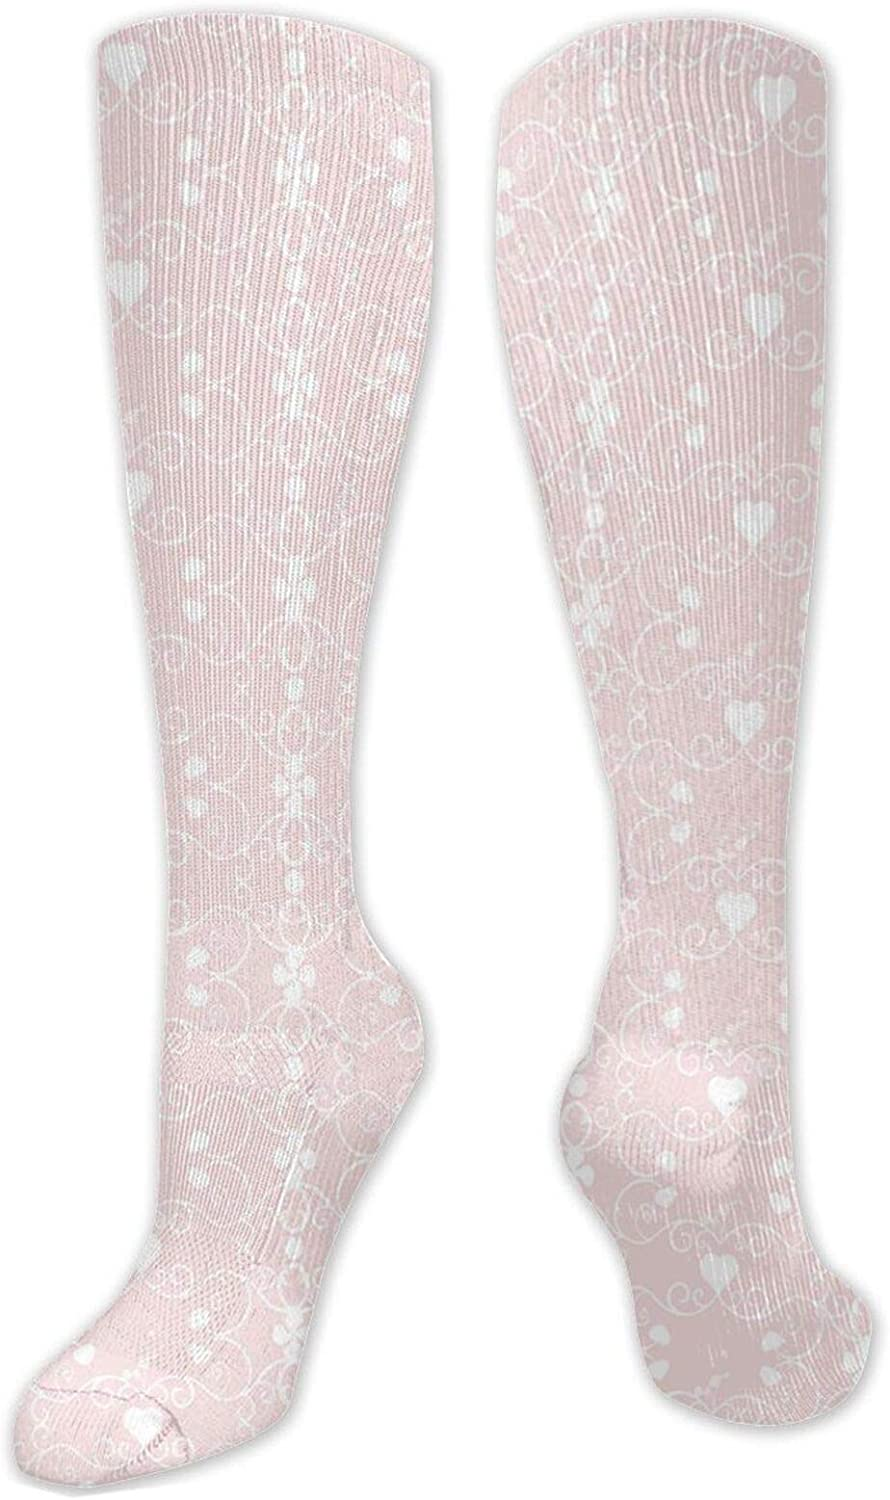 Compression High Socks-Victorian Style Girly Feminine Pattern With Curly Leaves Hearts And Flowers,Socks Women and Men - Best for Running,Athletic,Hiking,Travel,Flight